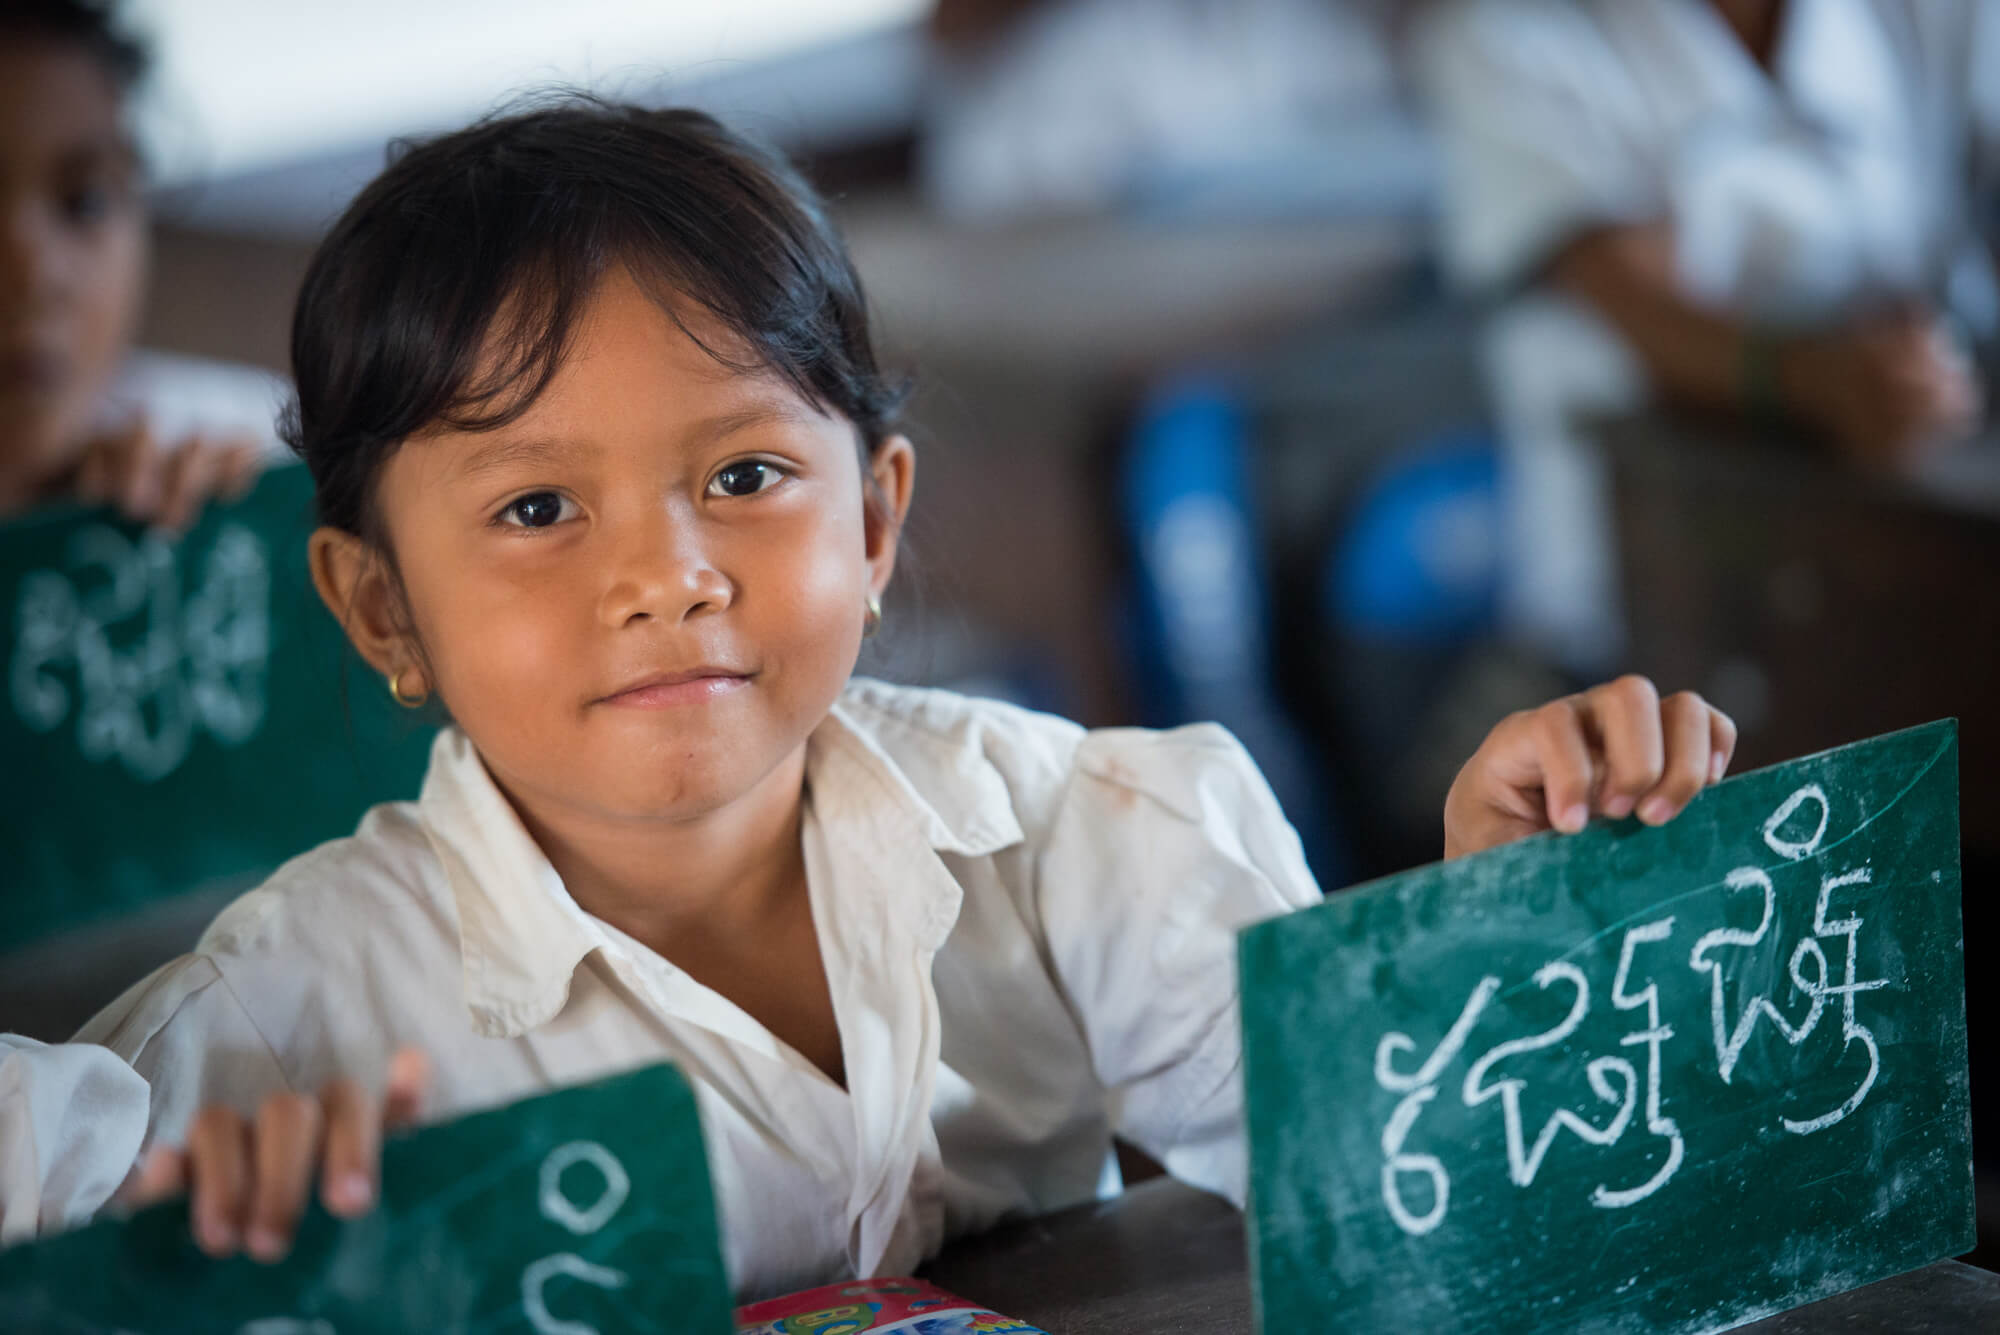 Young child holding up her answer board in classroom